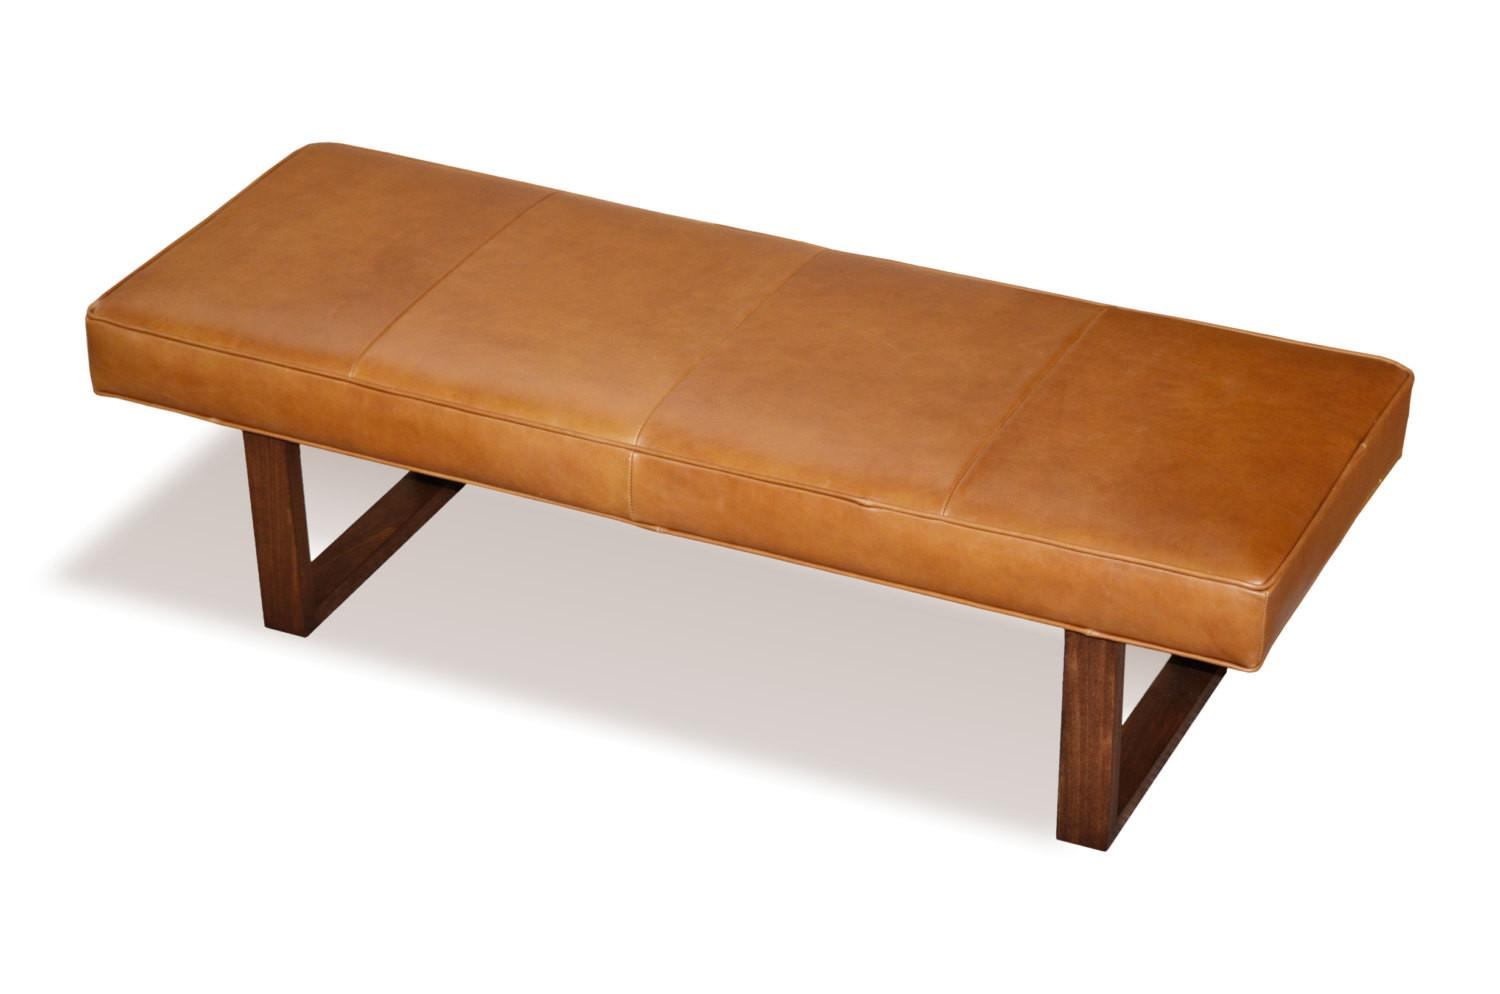 Distressed Brown Genuine Leather Upholstered Bench